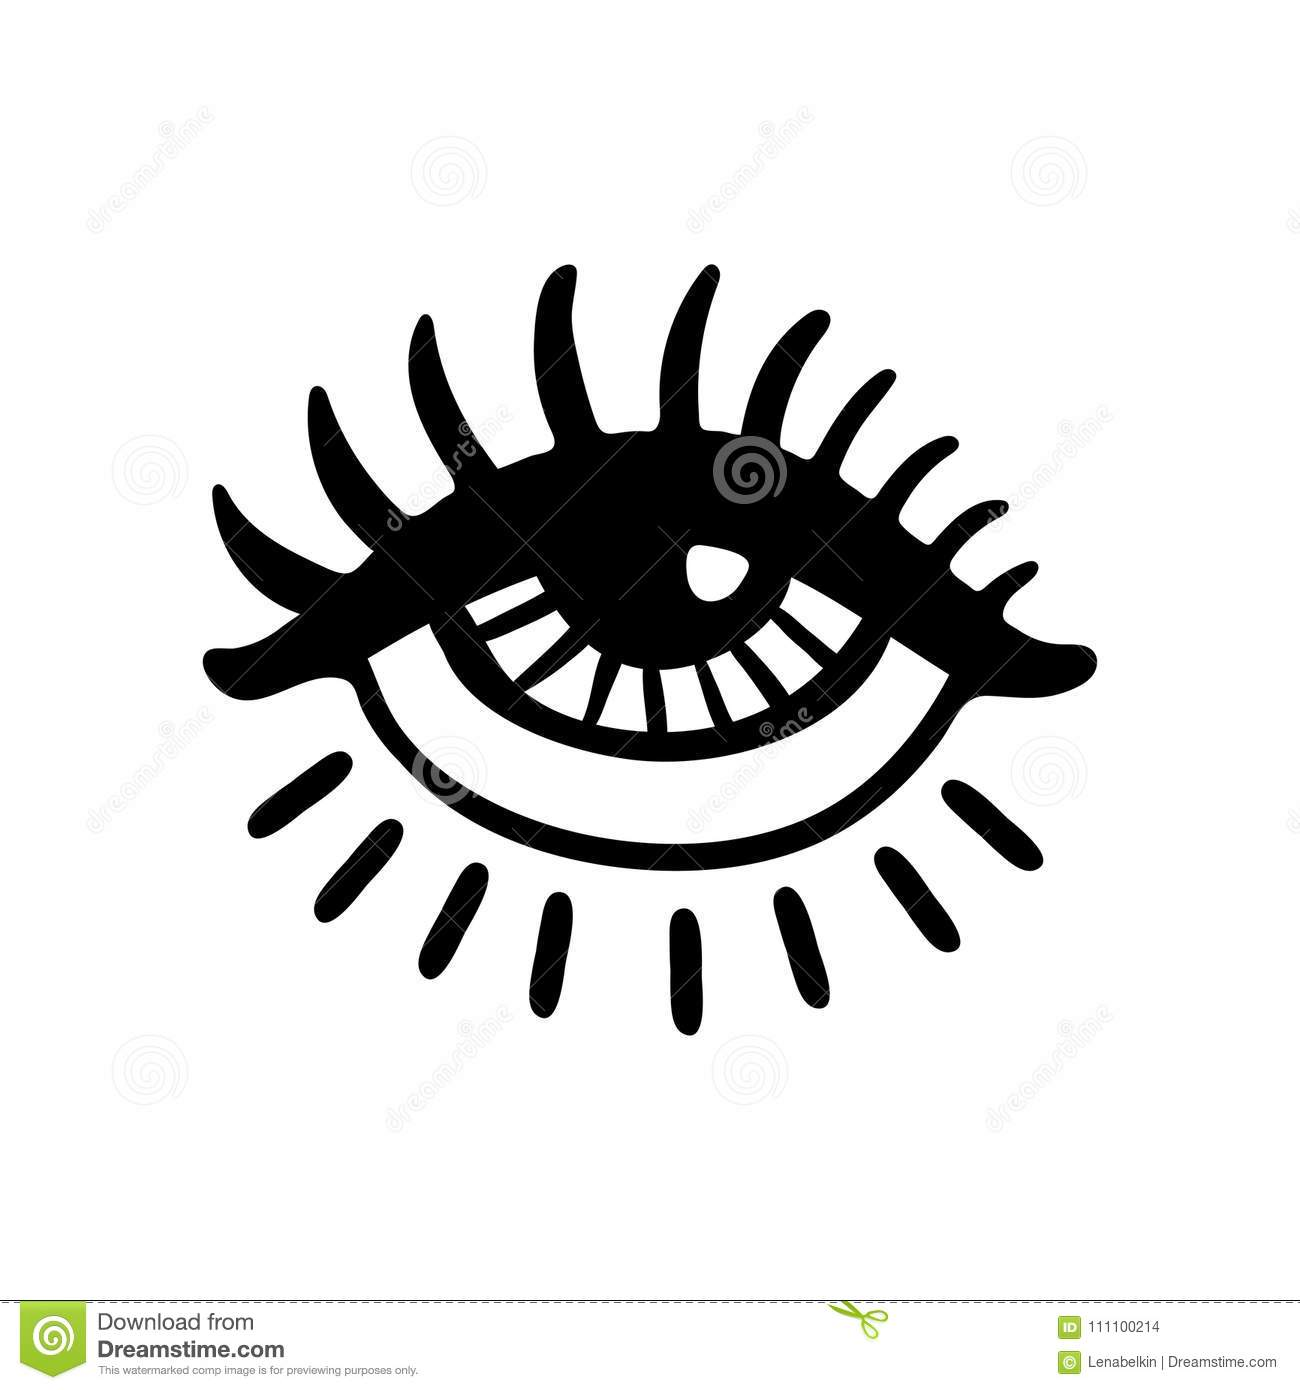 Hand drawn eye icon stock vector. Illustration of poster ...